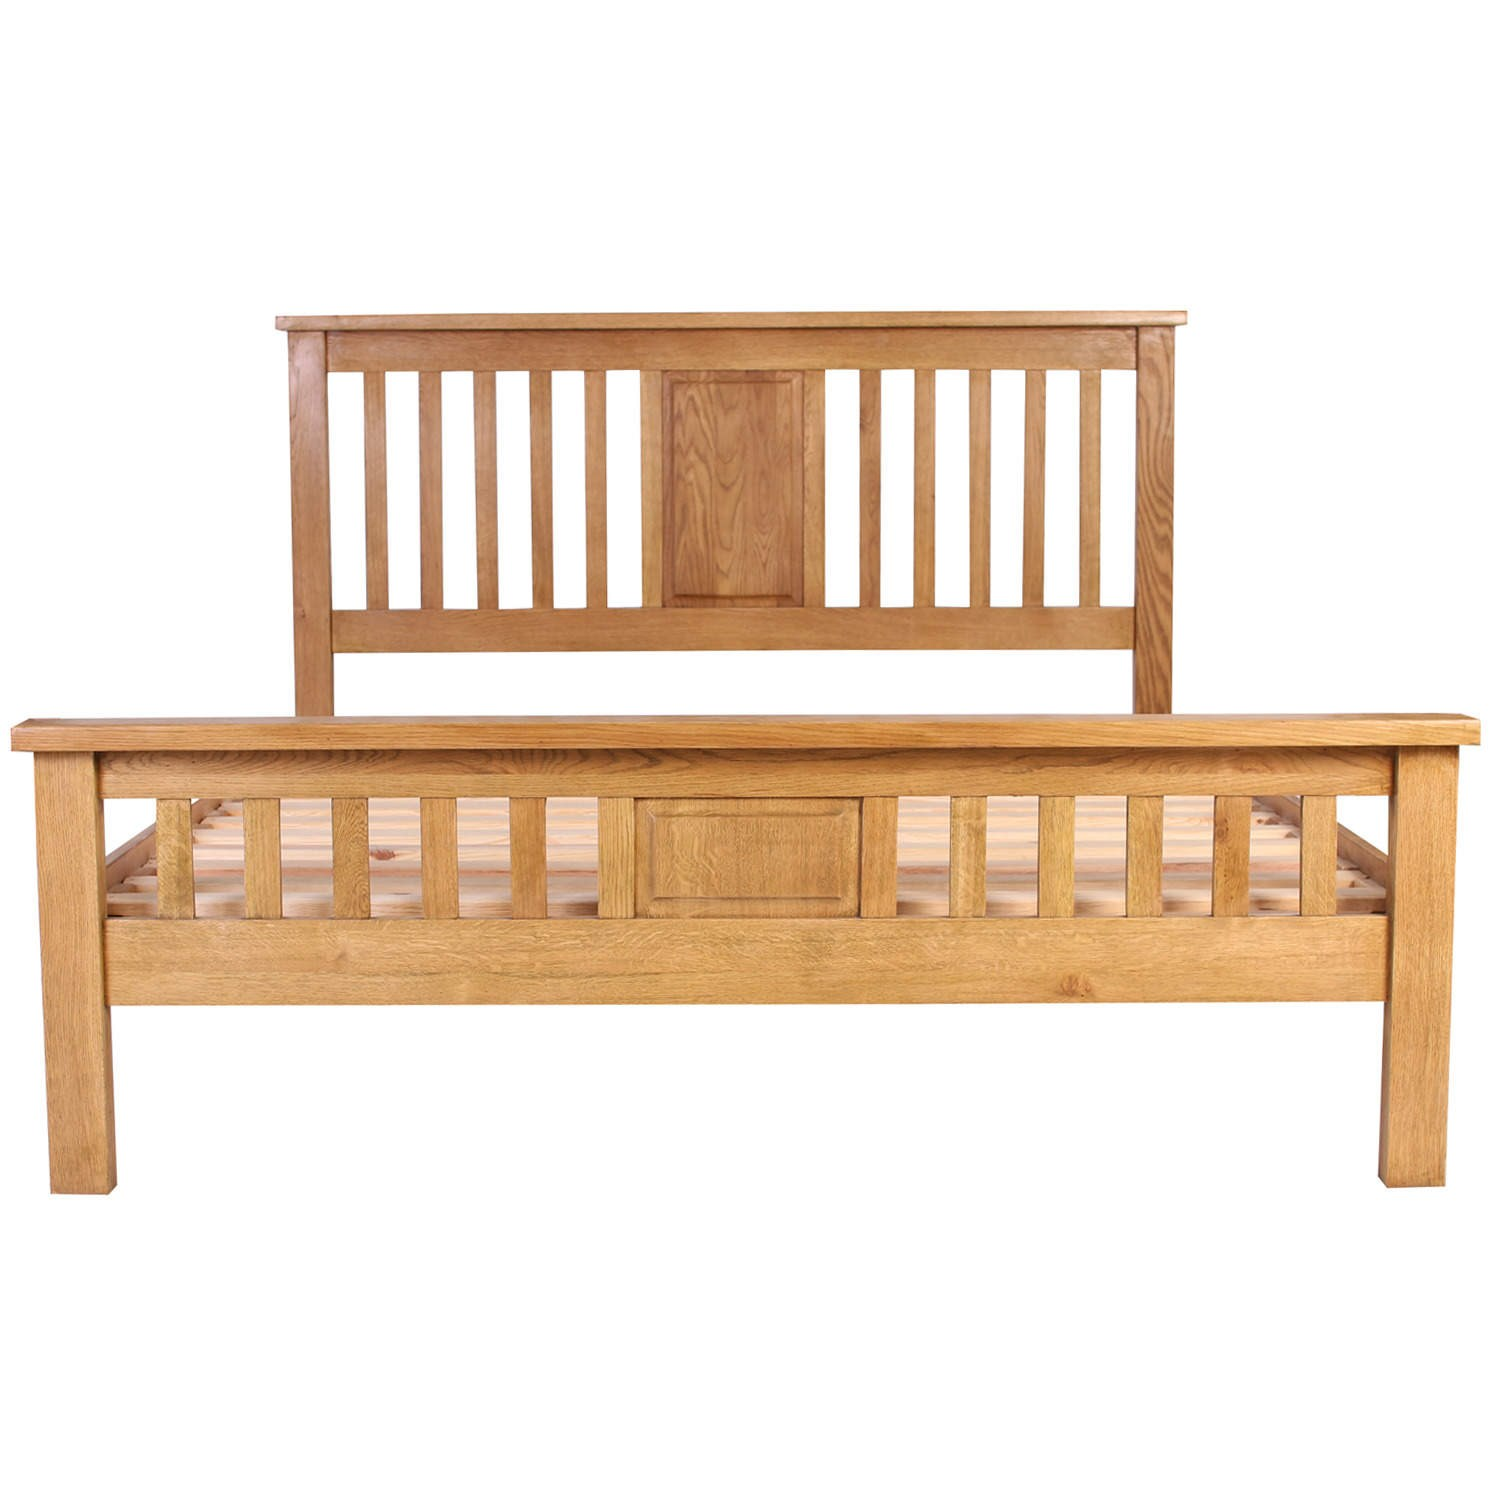 Rustic solid oak kingsize 5 39 0 5ft saxon bed frame strong Rustic bed frames